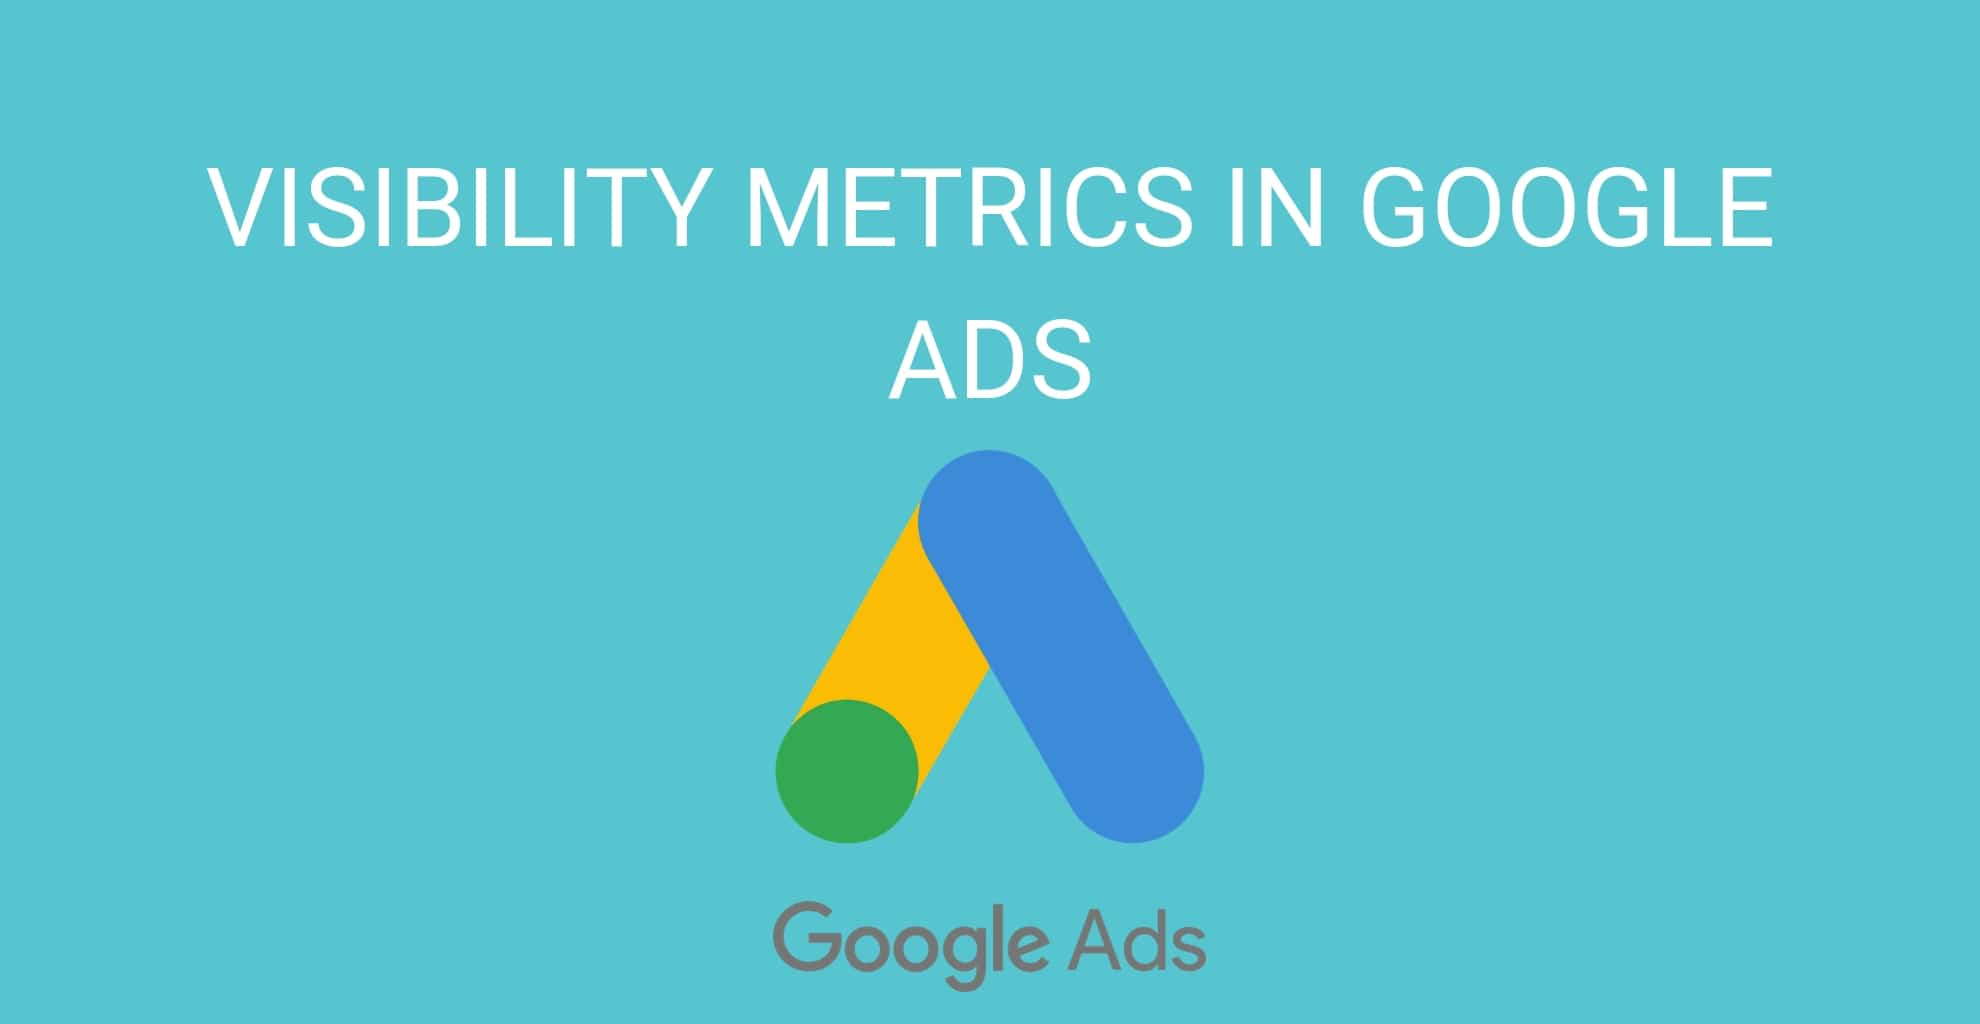 Visibility metrics in Google Ads